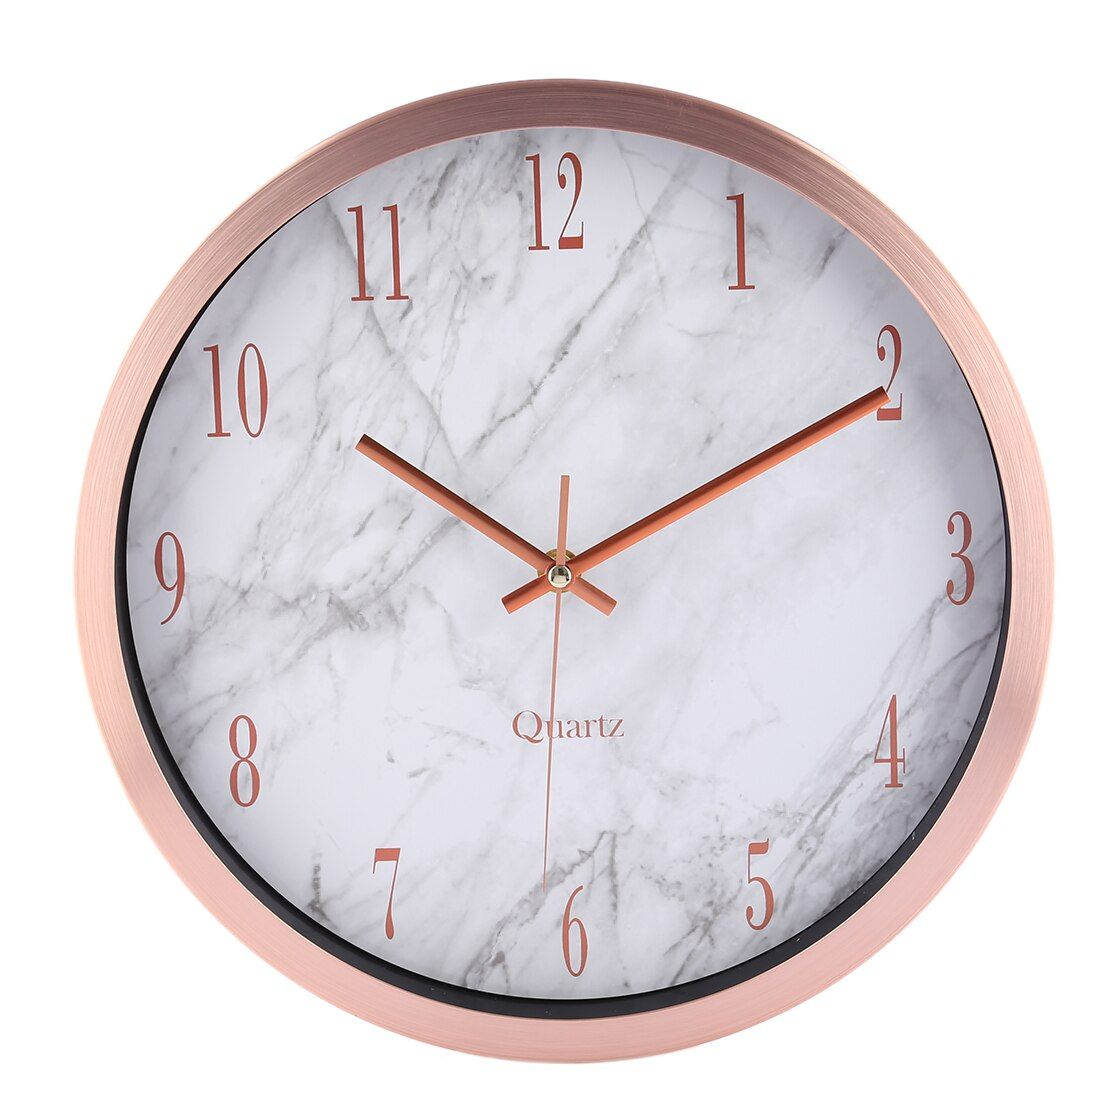 12 Inch Watch Wall Clocks Silente Round Marbling Household Office Livingroom Mute Hanging Clock Wall Decor Room Decor Bedroom Rose Gold Gold Room Decor Rose Gold Room Decor